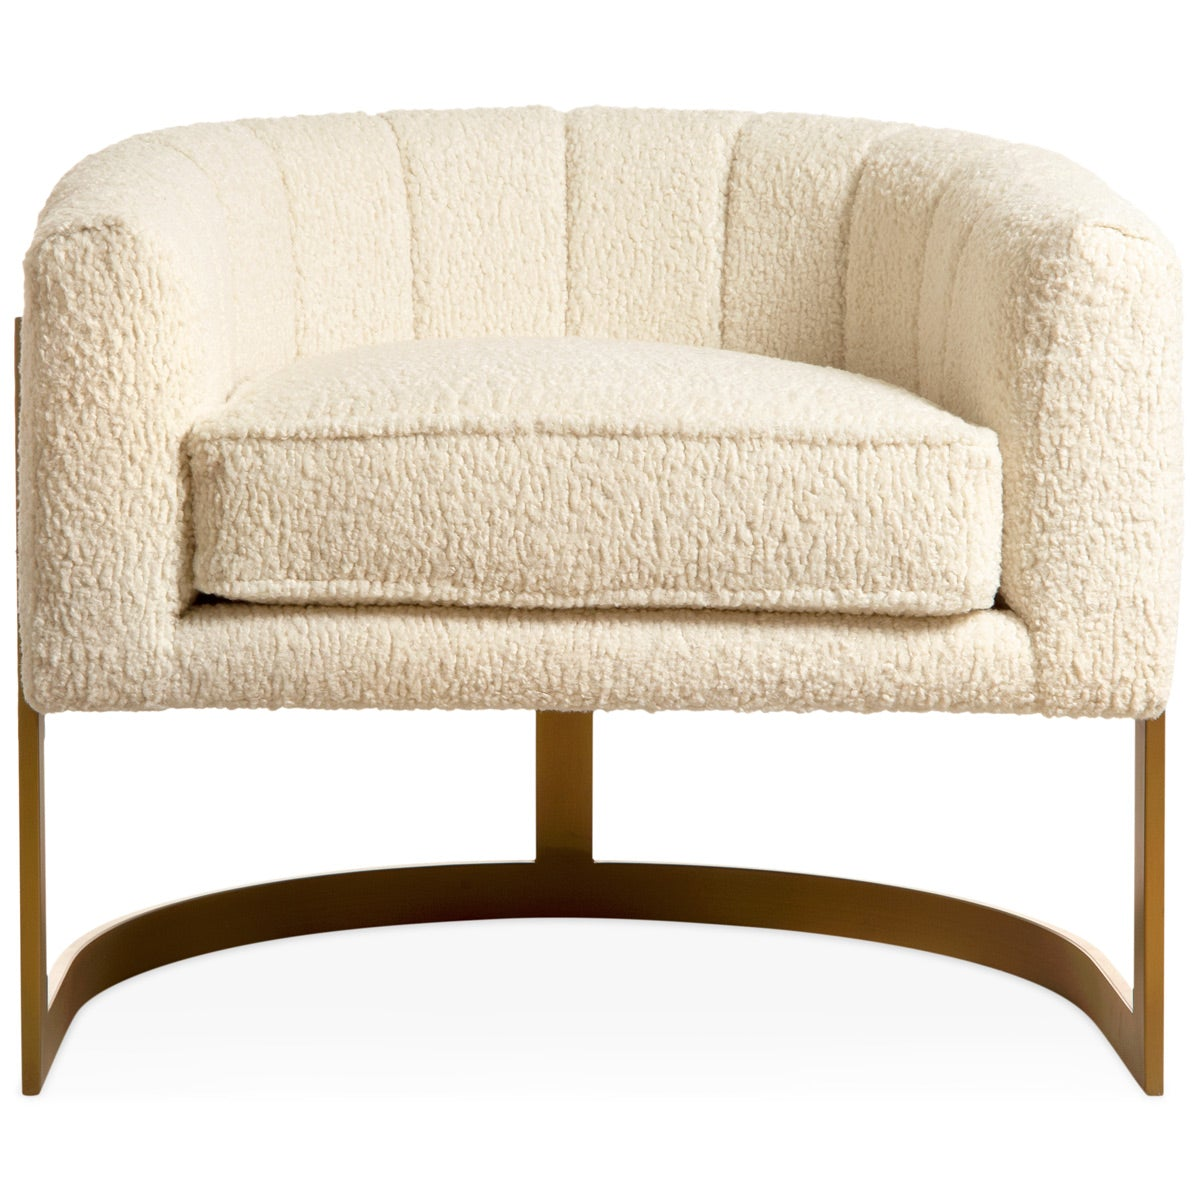 Ibiza Arm Chair in Faux Sheepskin - ModShop1.com